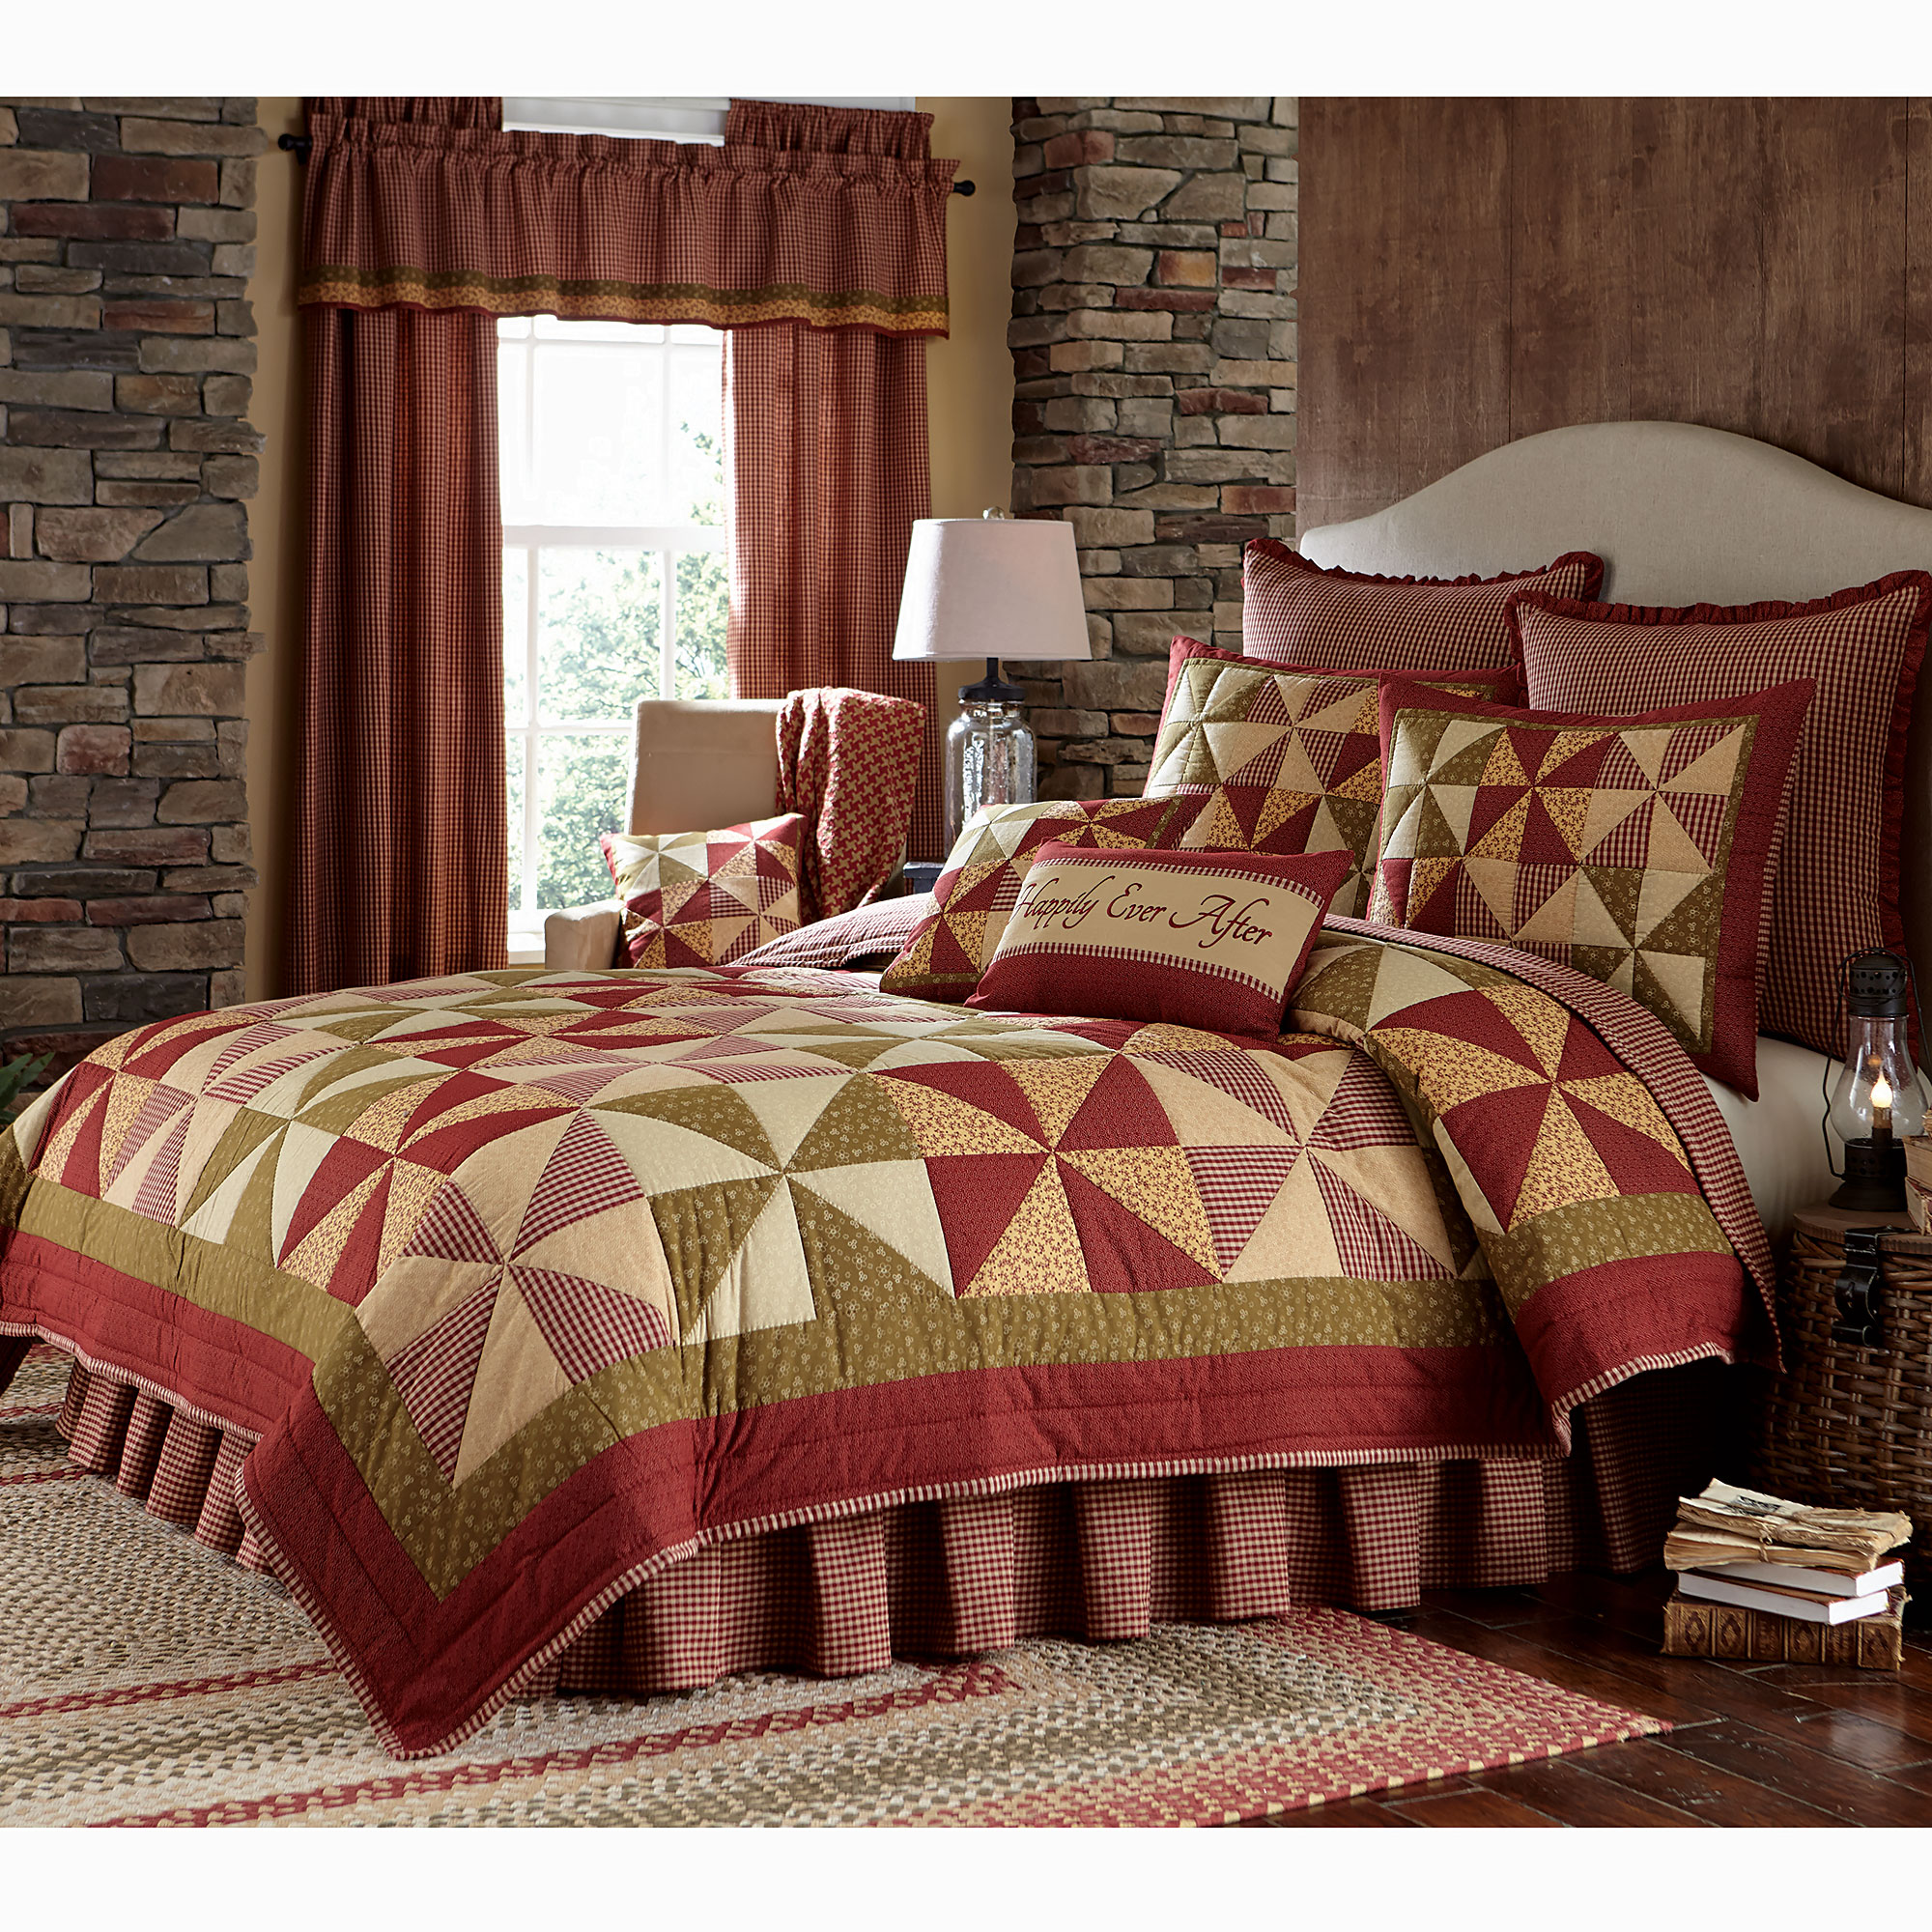 PKD-444-91-Mill-Village-Queen-Quilt-LRG